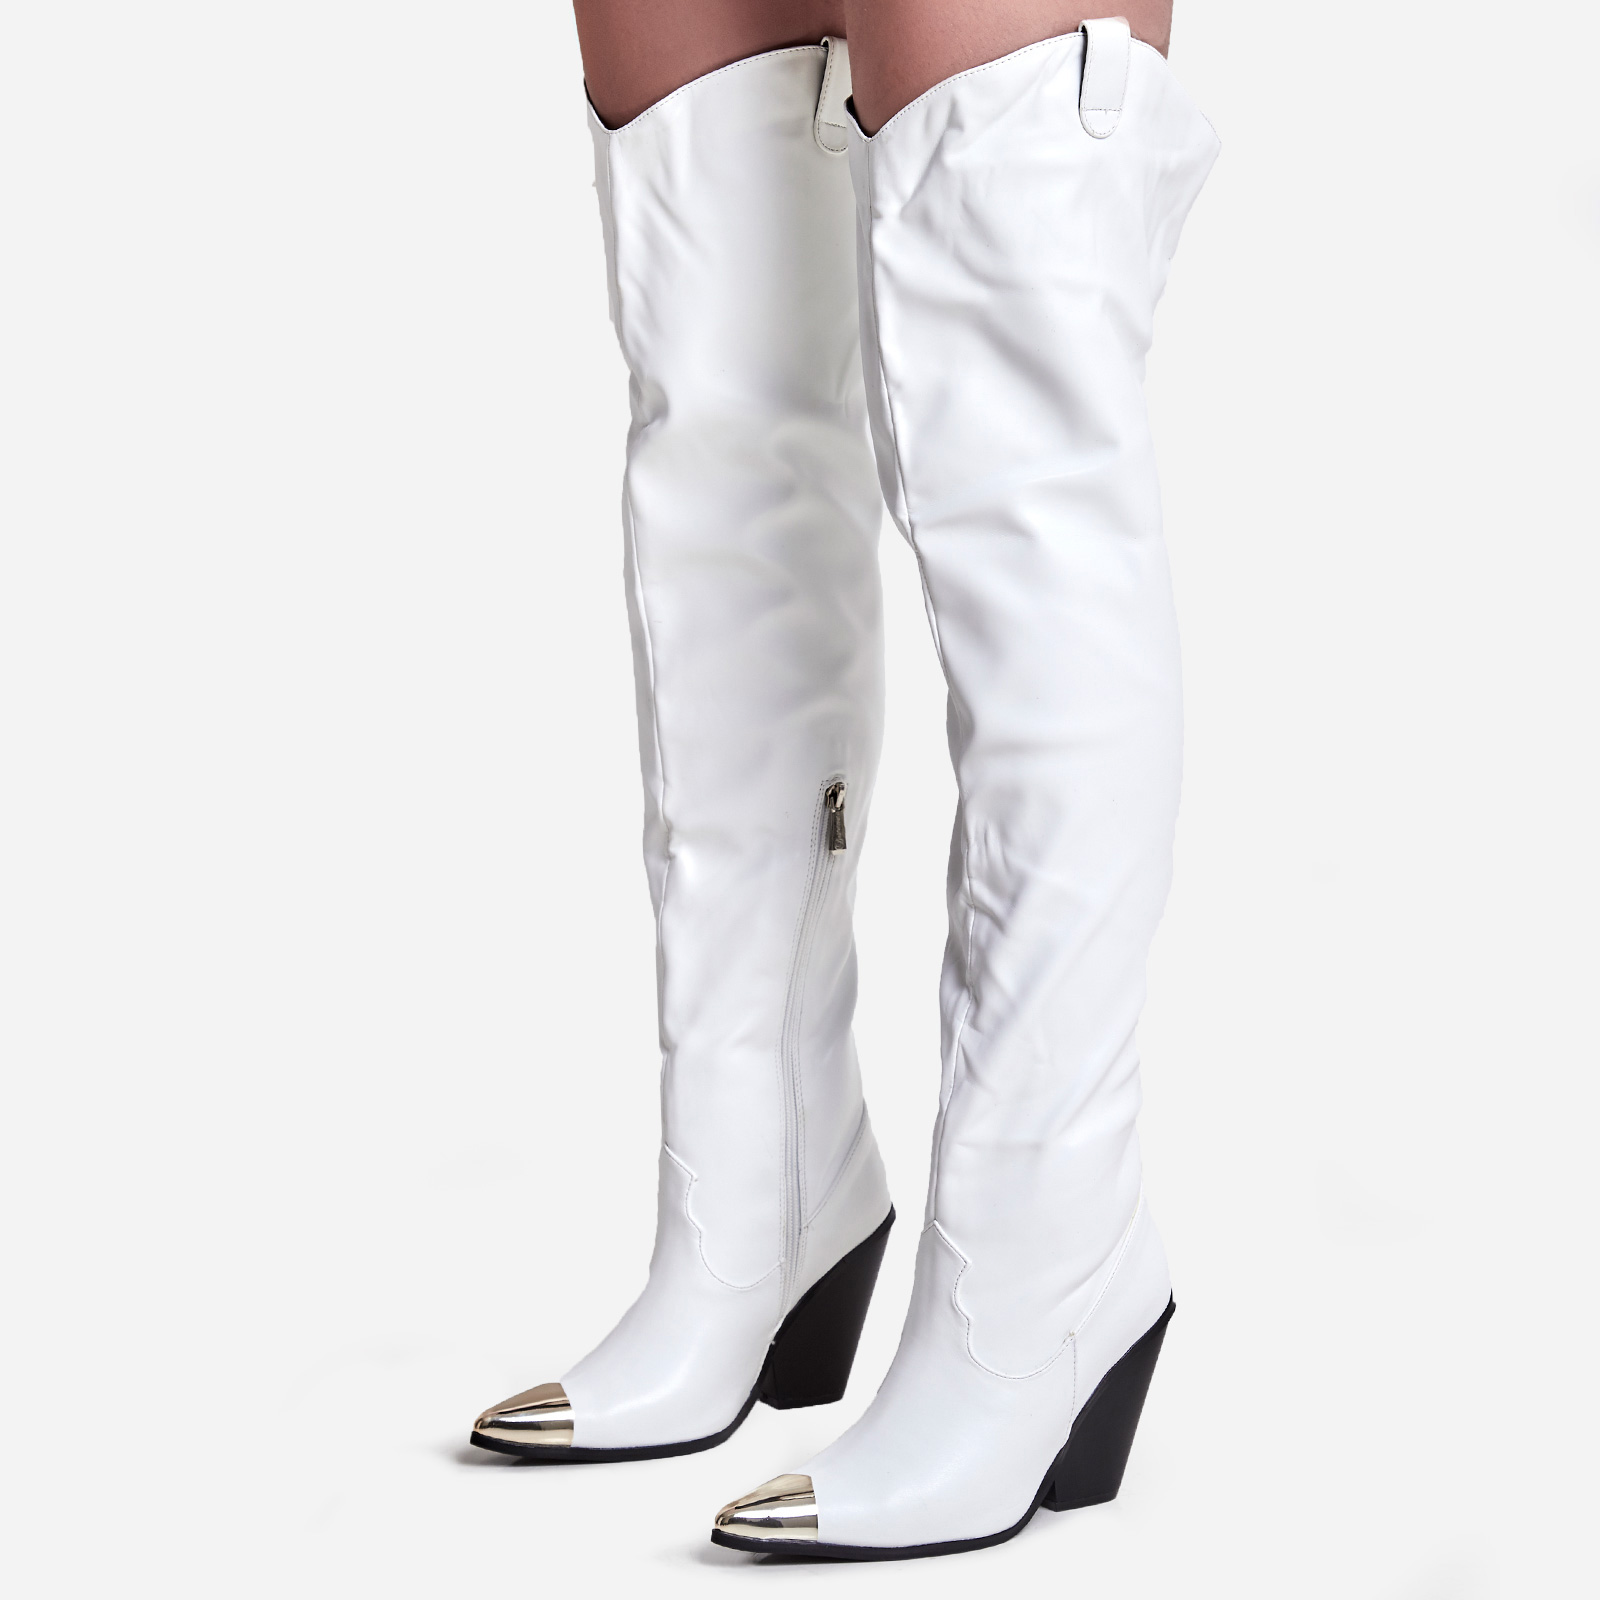 Gonna Toe Cap Detail Thigh High Western Long Boot In White Faux Leather